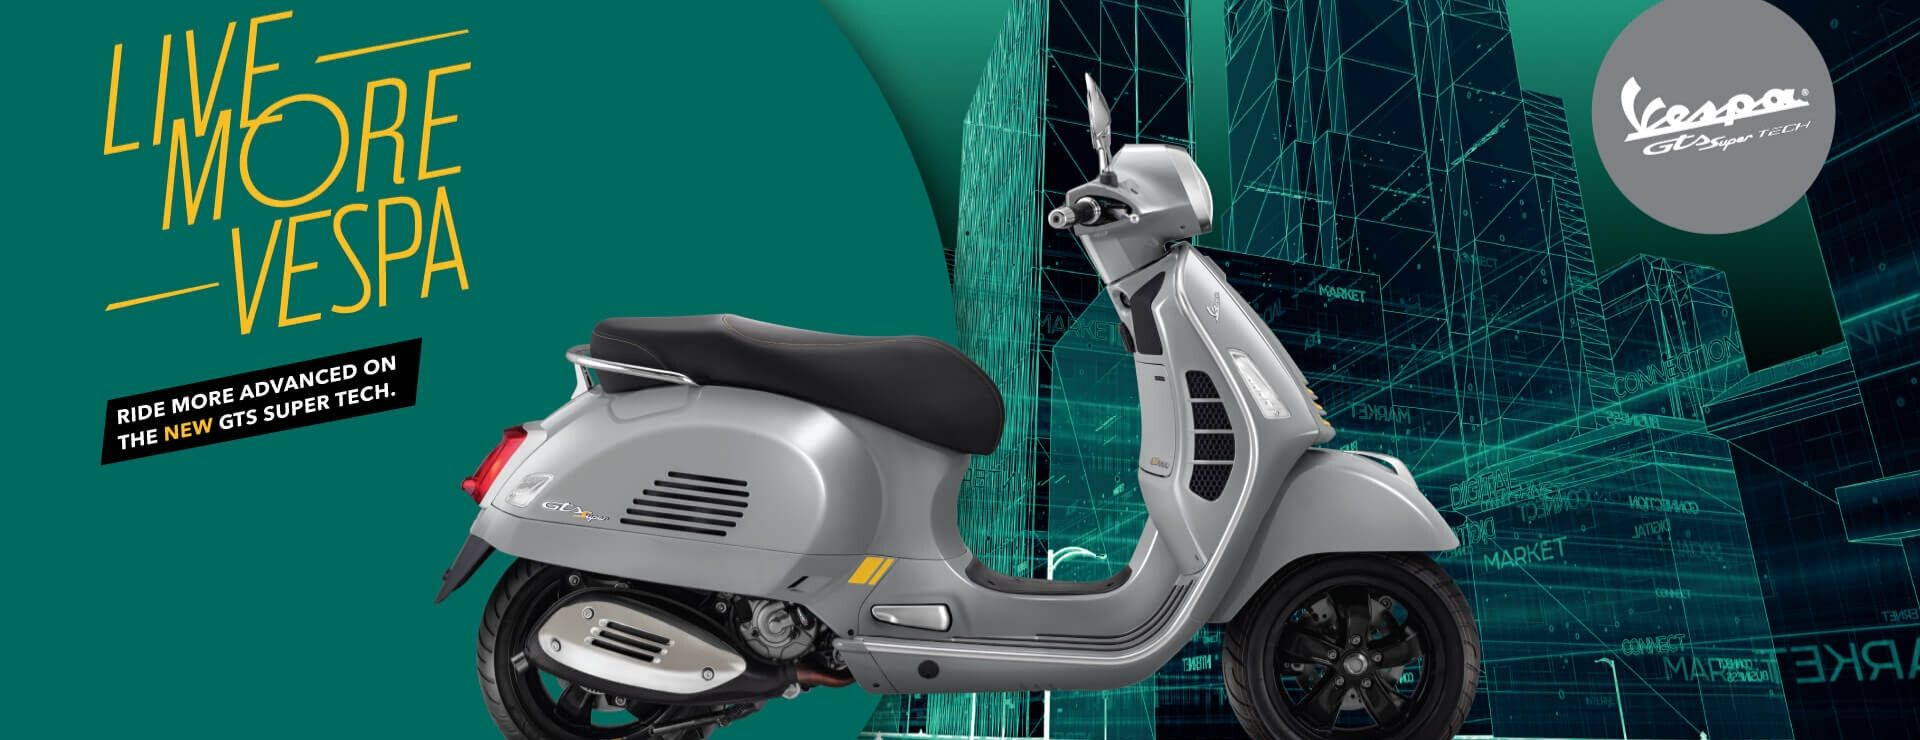 Live more Vespa! Maximum sportiness and super technology, this sits at the very top of the Vespa GTS Super range.